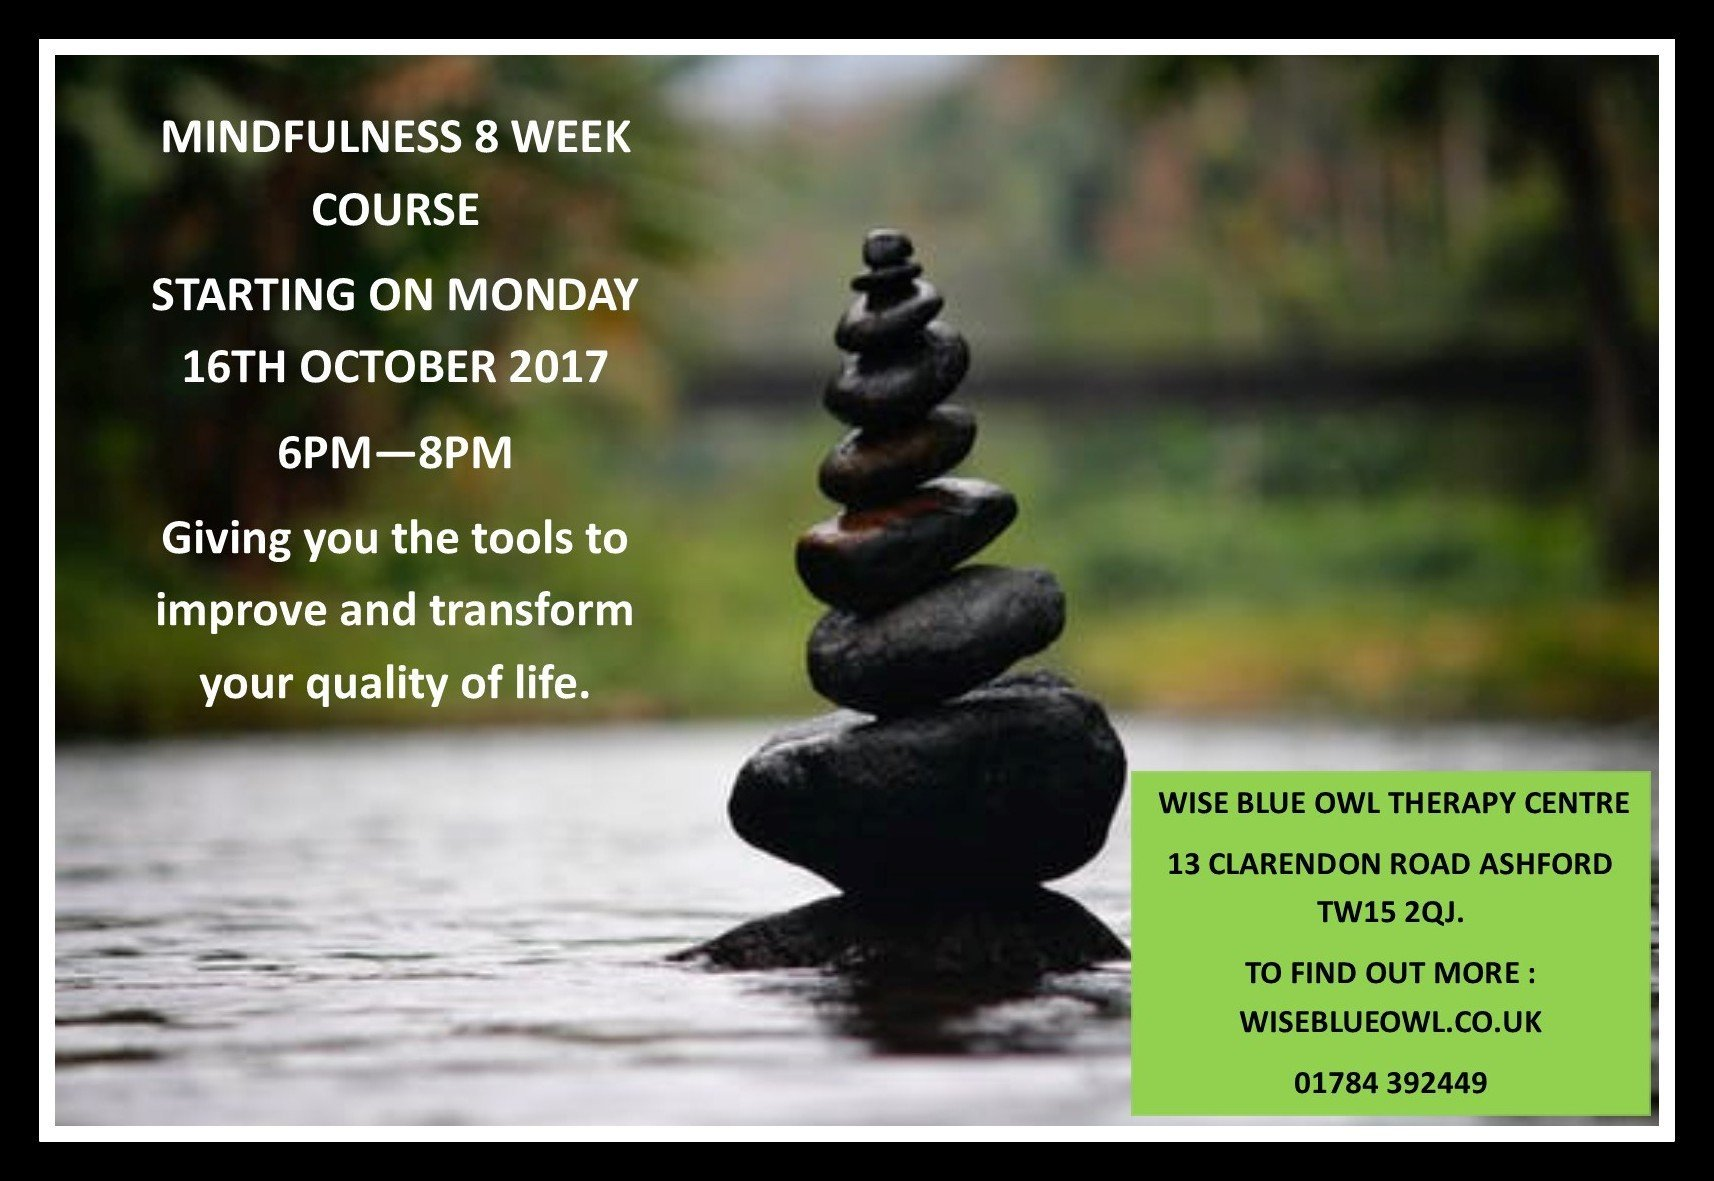 Mindfulness course in ashford surrey october 2017